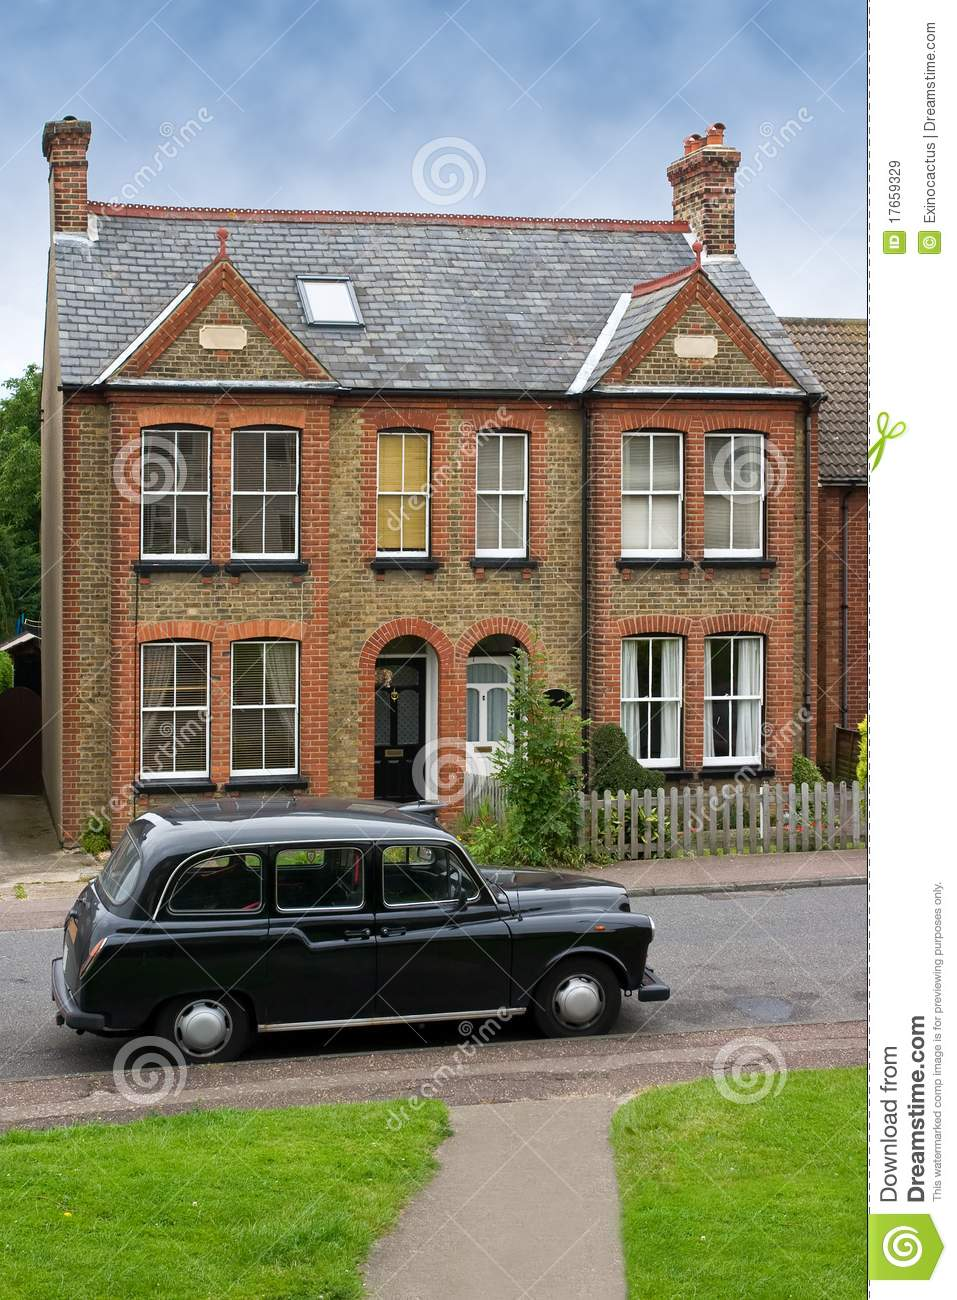 Old car in front of a typical house in harlow uk royalty for Classic house fronts